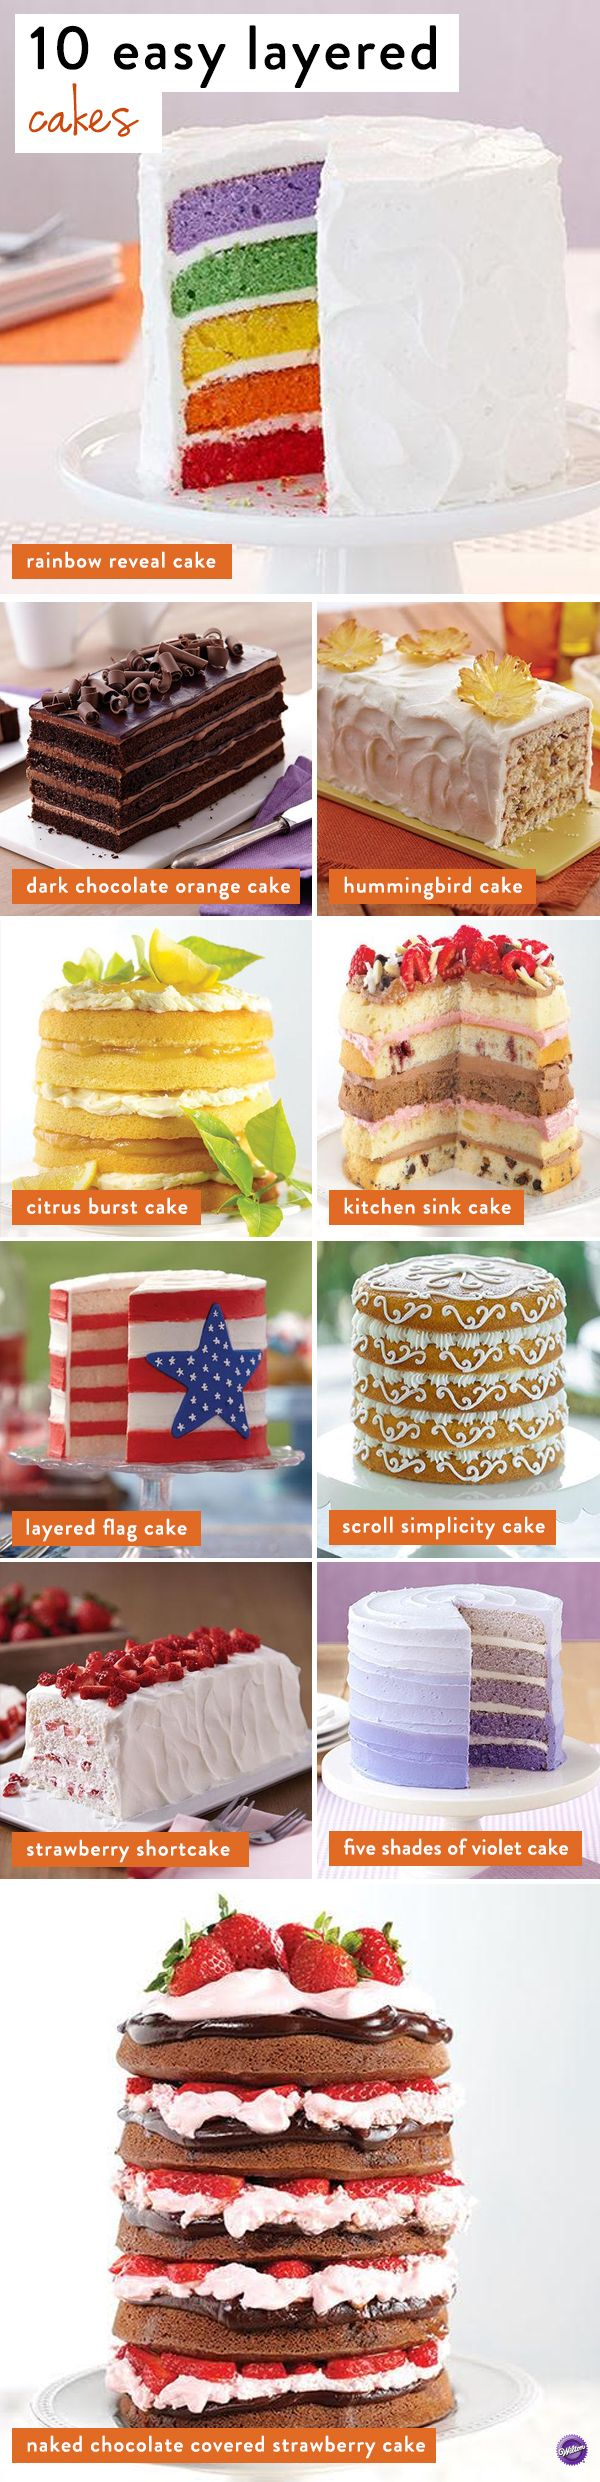 10 Easy Layered Cake Recipes - Using the Easy Layers pan set, learn how to make these easy layered cakes! These pans help save you the trouble of torting your cakes to make a trendy, tall, multi-layer cake. Just one box of cake mix or a single batch of batter is enough to fill all the pans in each set!